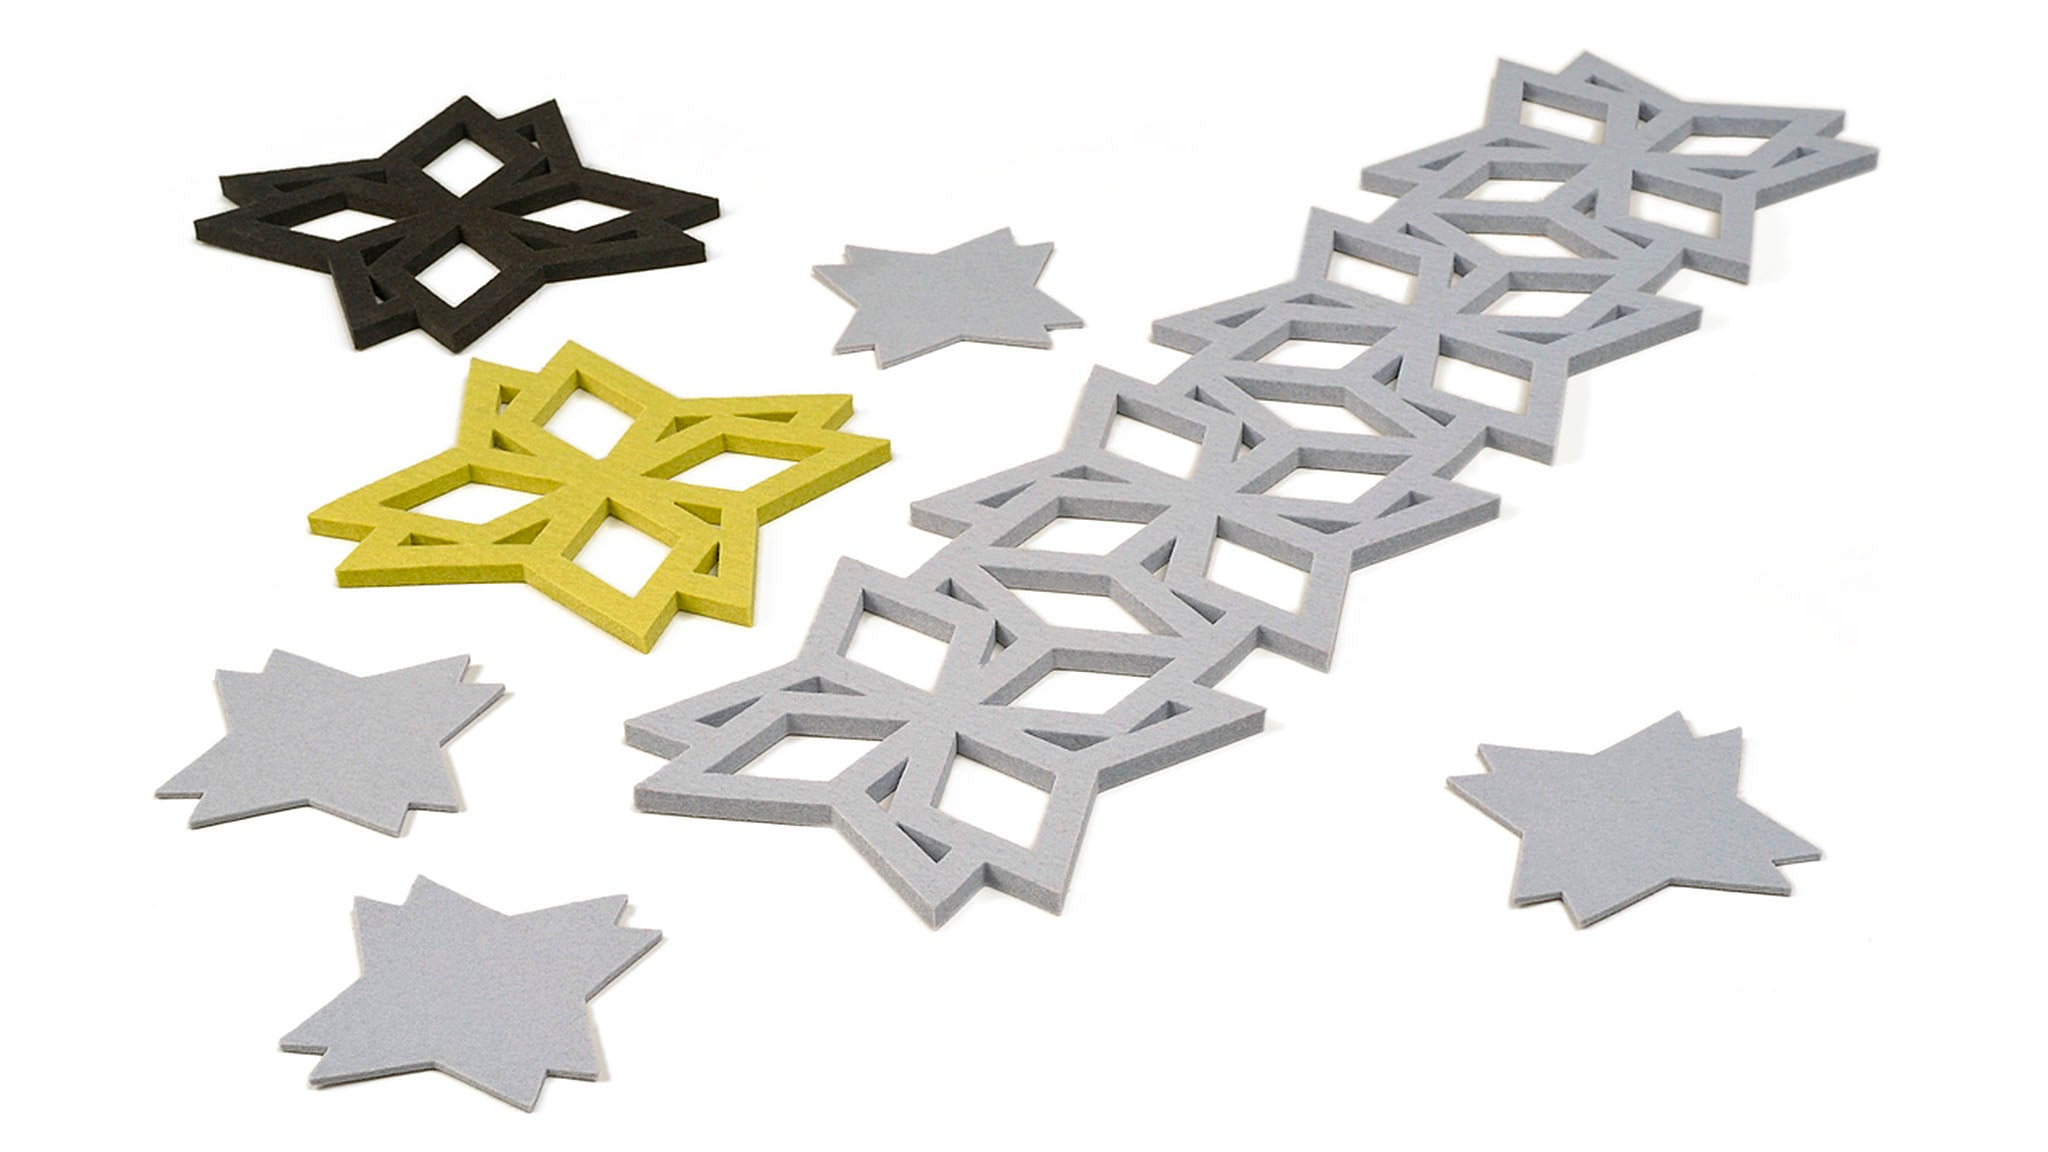 New York Magazine, 2010 Not-So-Last-Minute Gift Guide: Kide coasters by Verso Design.